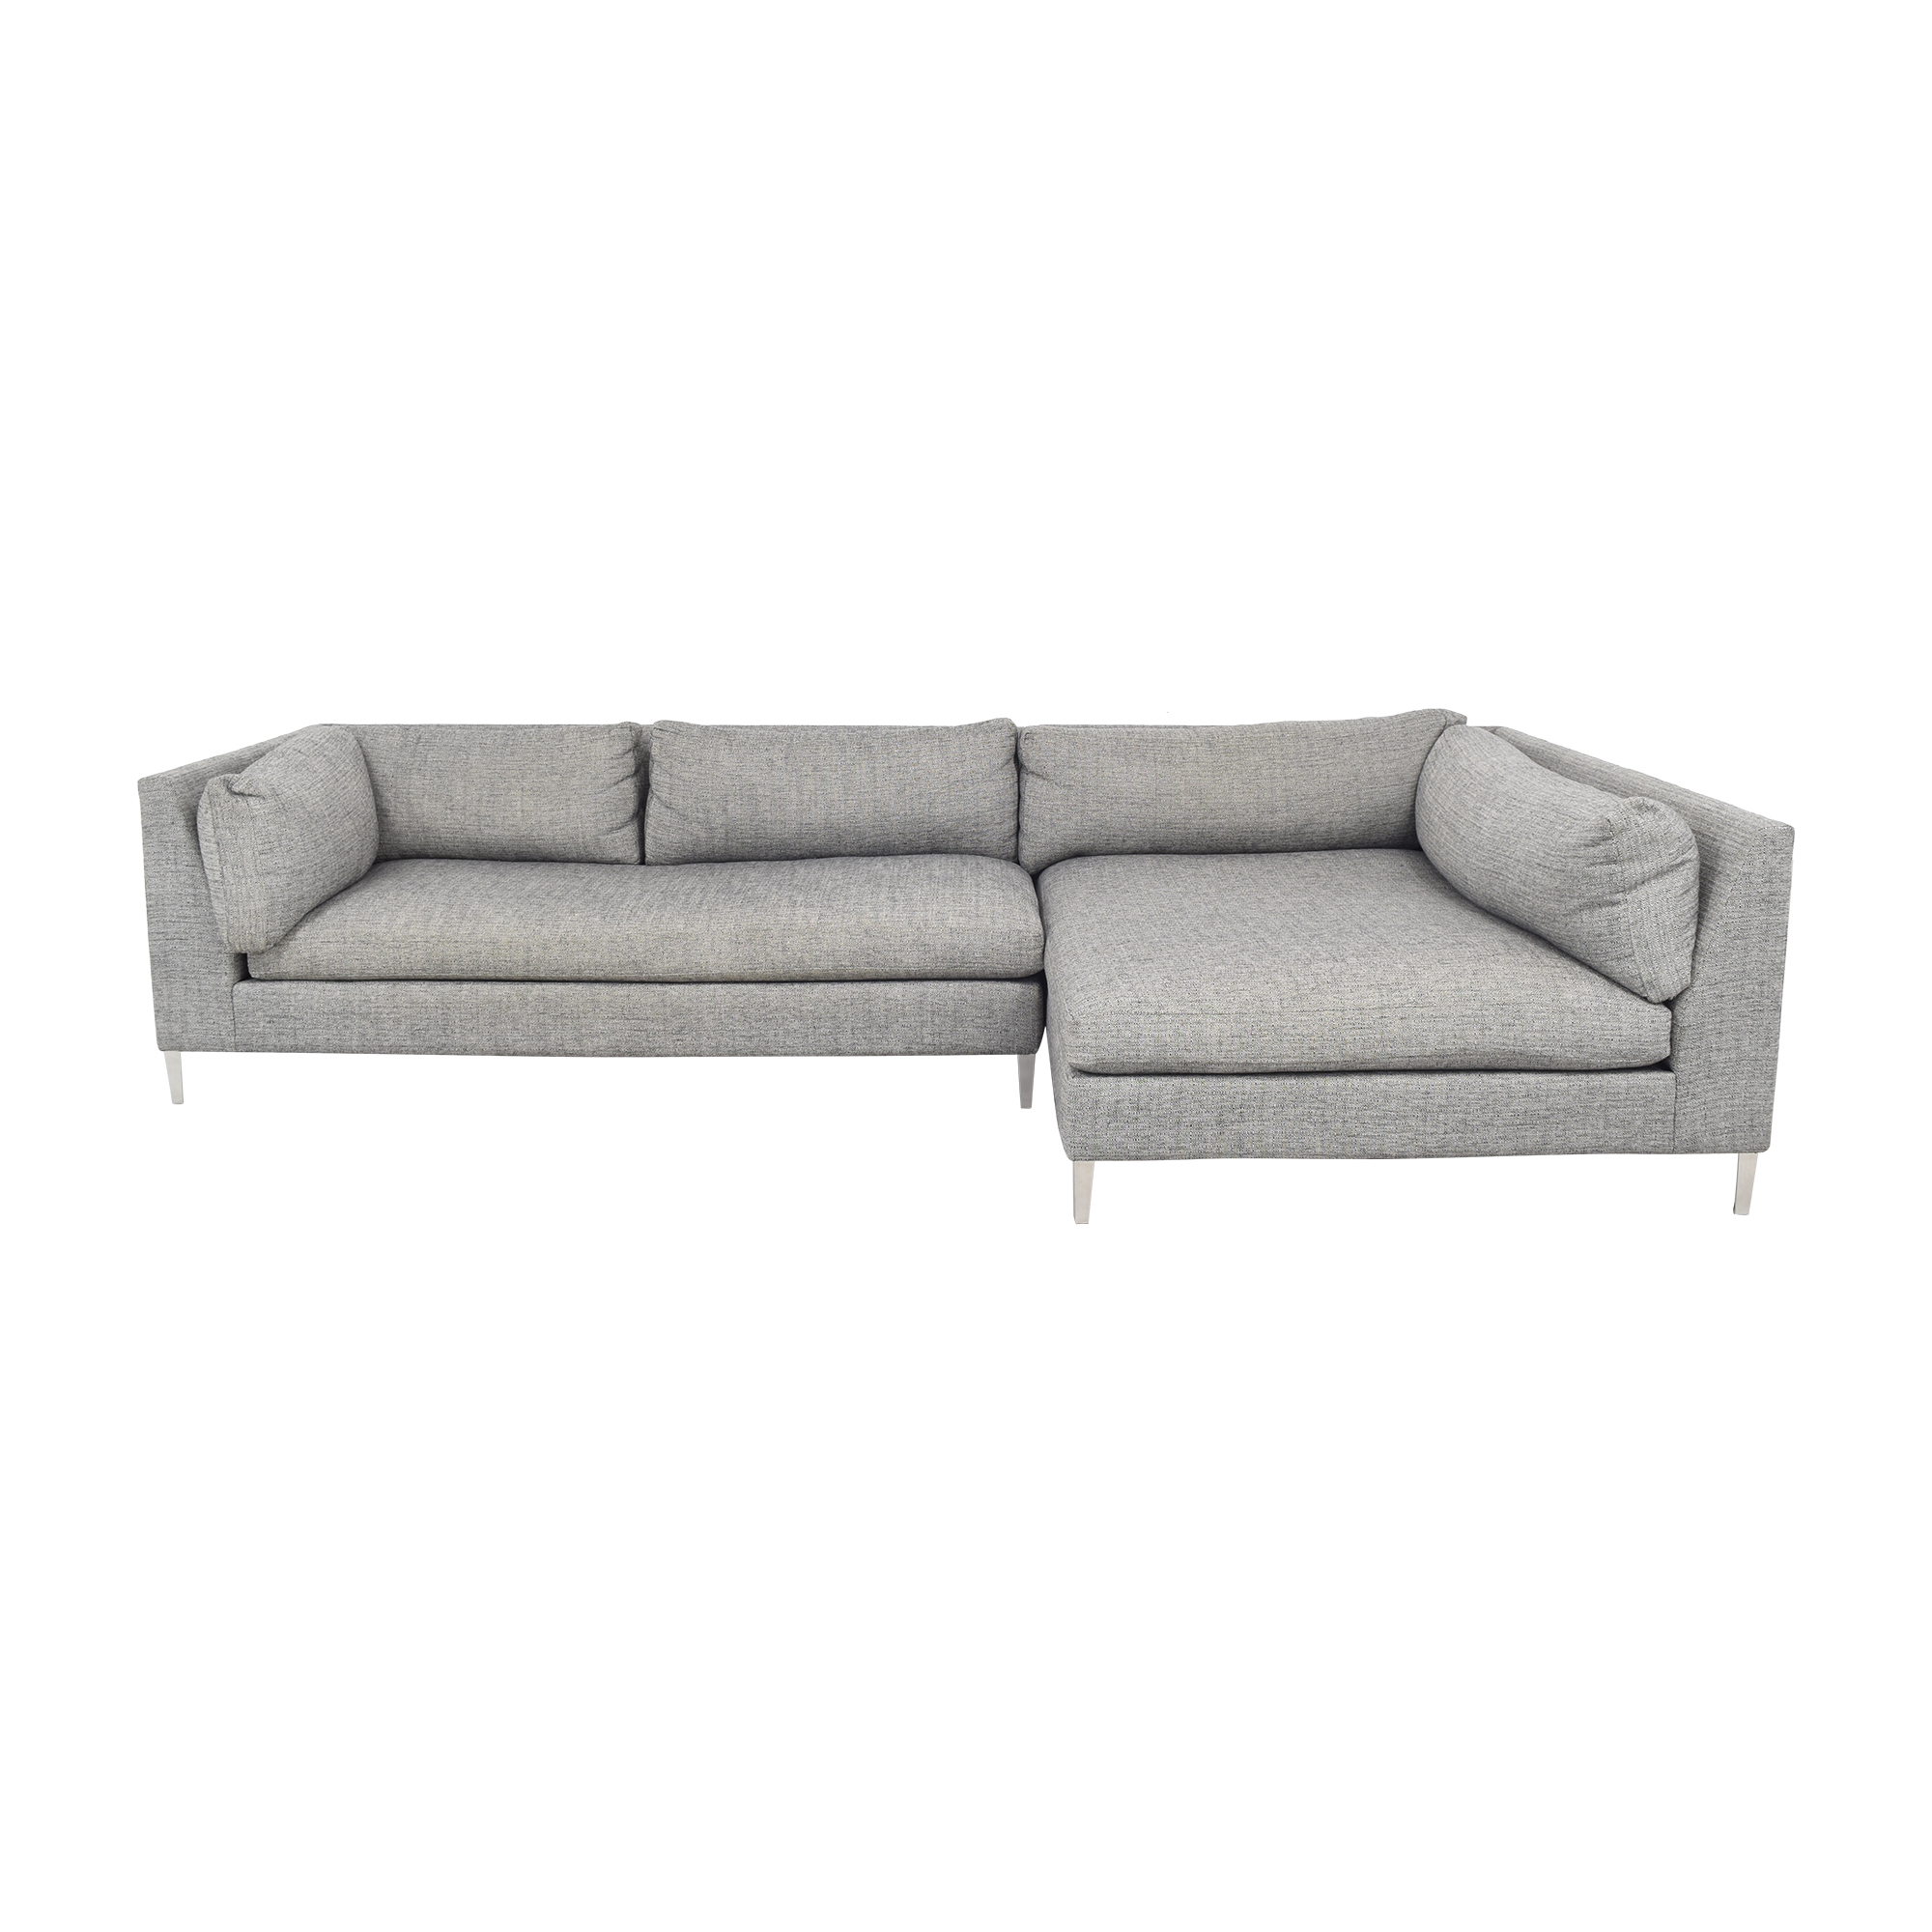 CB2 CB2 Decker Two- Piece Sectional Sofa dimensions